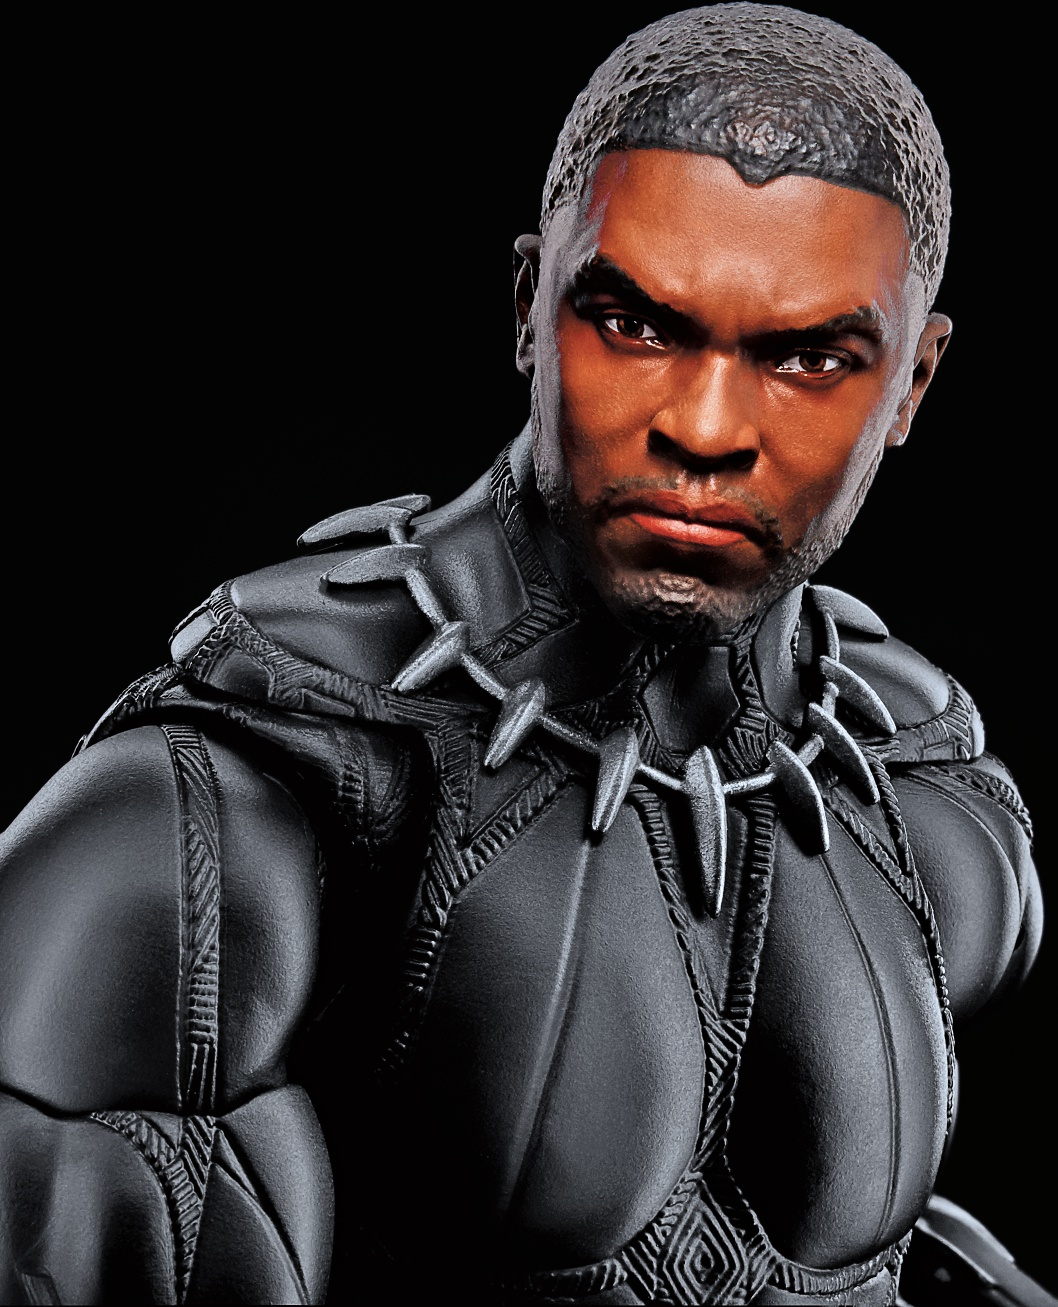 Hasbro: Marvel Legends 12-inch Black Panther revealed at D23!